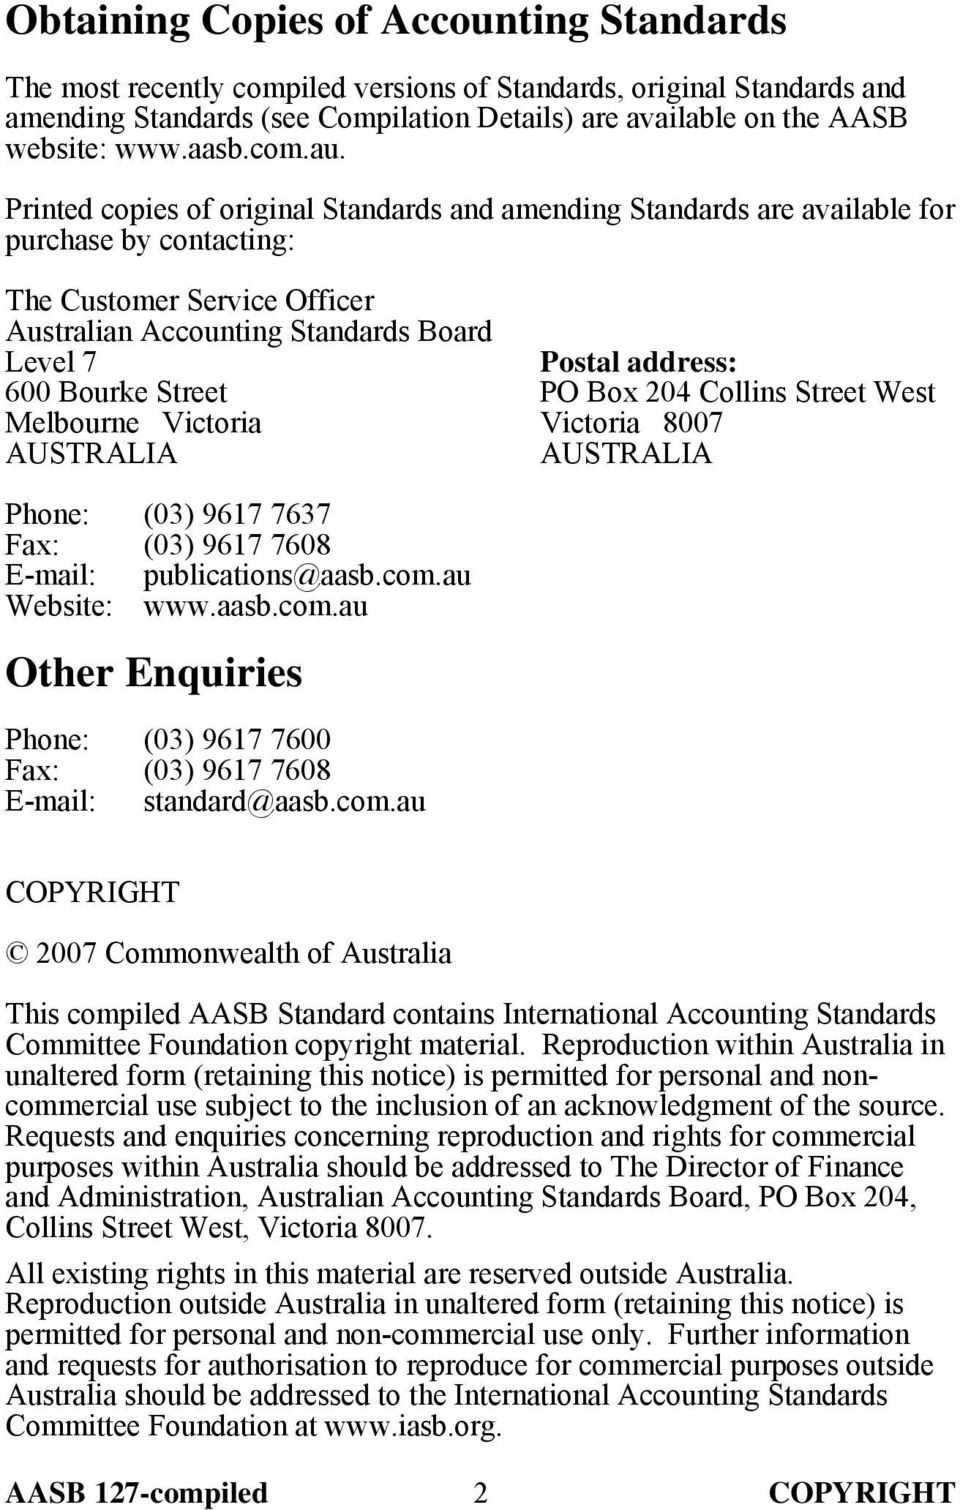 Printed copies of original Standards and amending Standards are available for purchase by contacting: The Customer Service Officer Australian Accounting Standards Board Level 7 600 Bourke Street